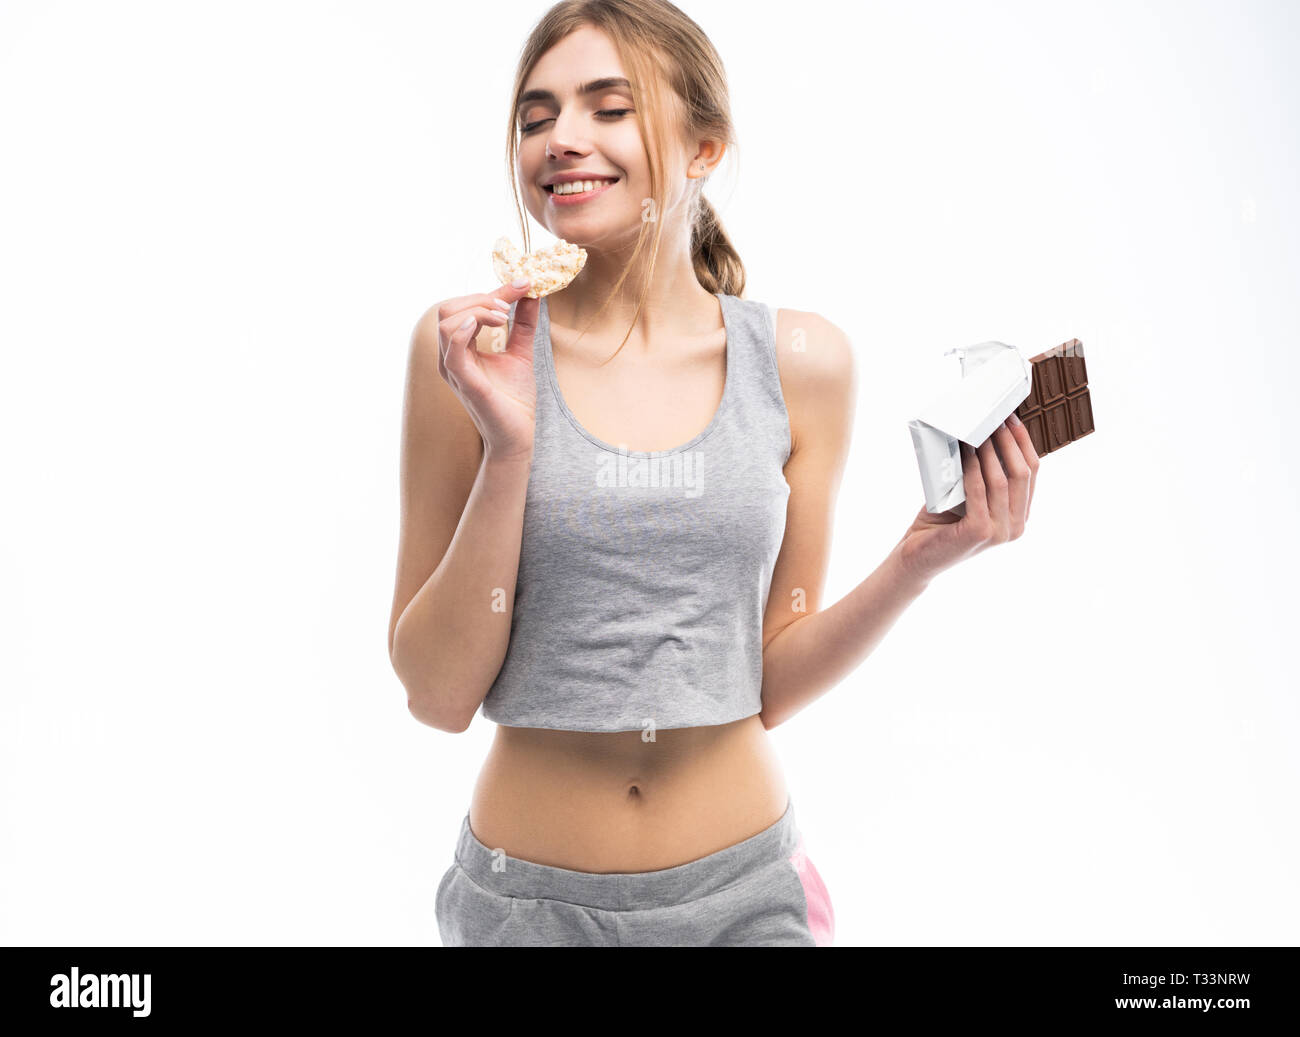 Diet. Dieting concept. Healthy Food. Beautiful Young Woman choosing between Healthy and Unhealthy Food.Fruits or Sweets. Isolated on a White Backgroun - Stock Photo